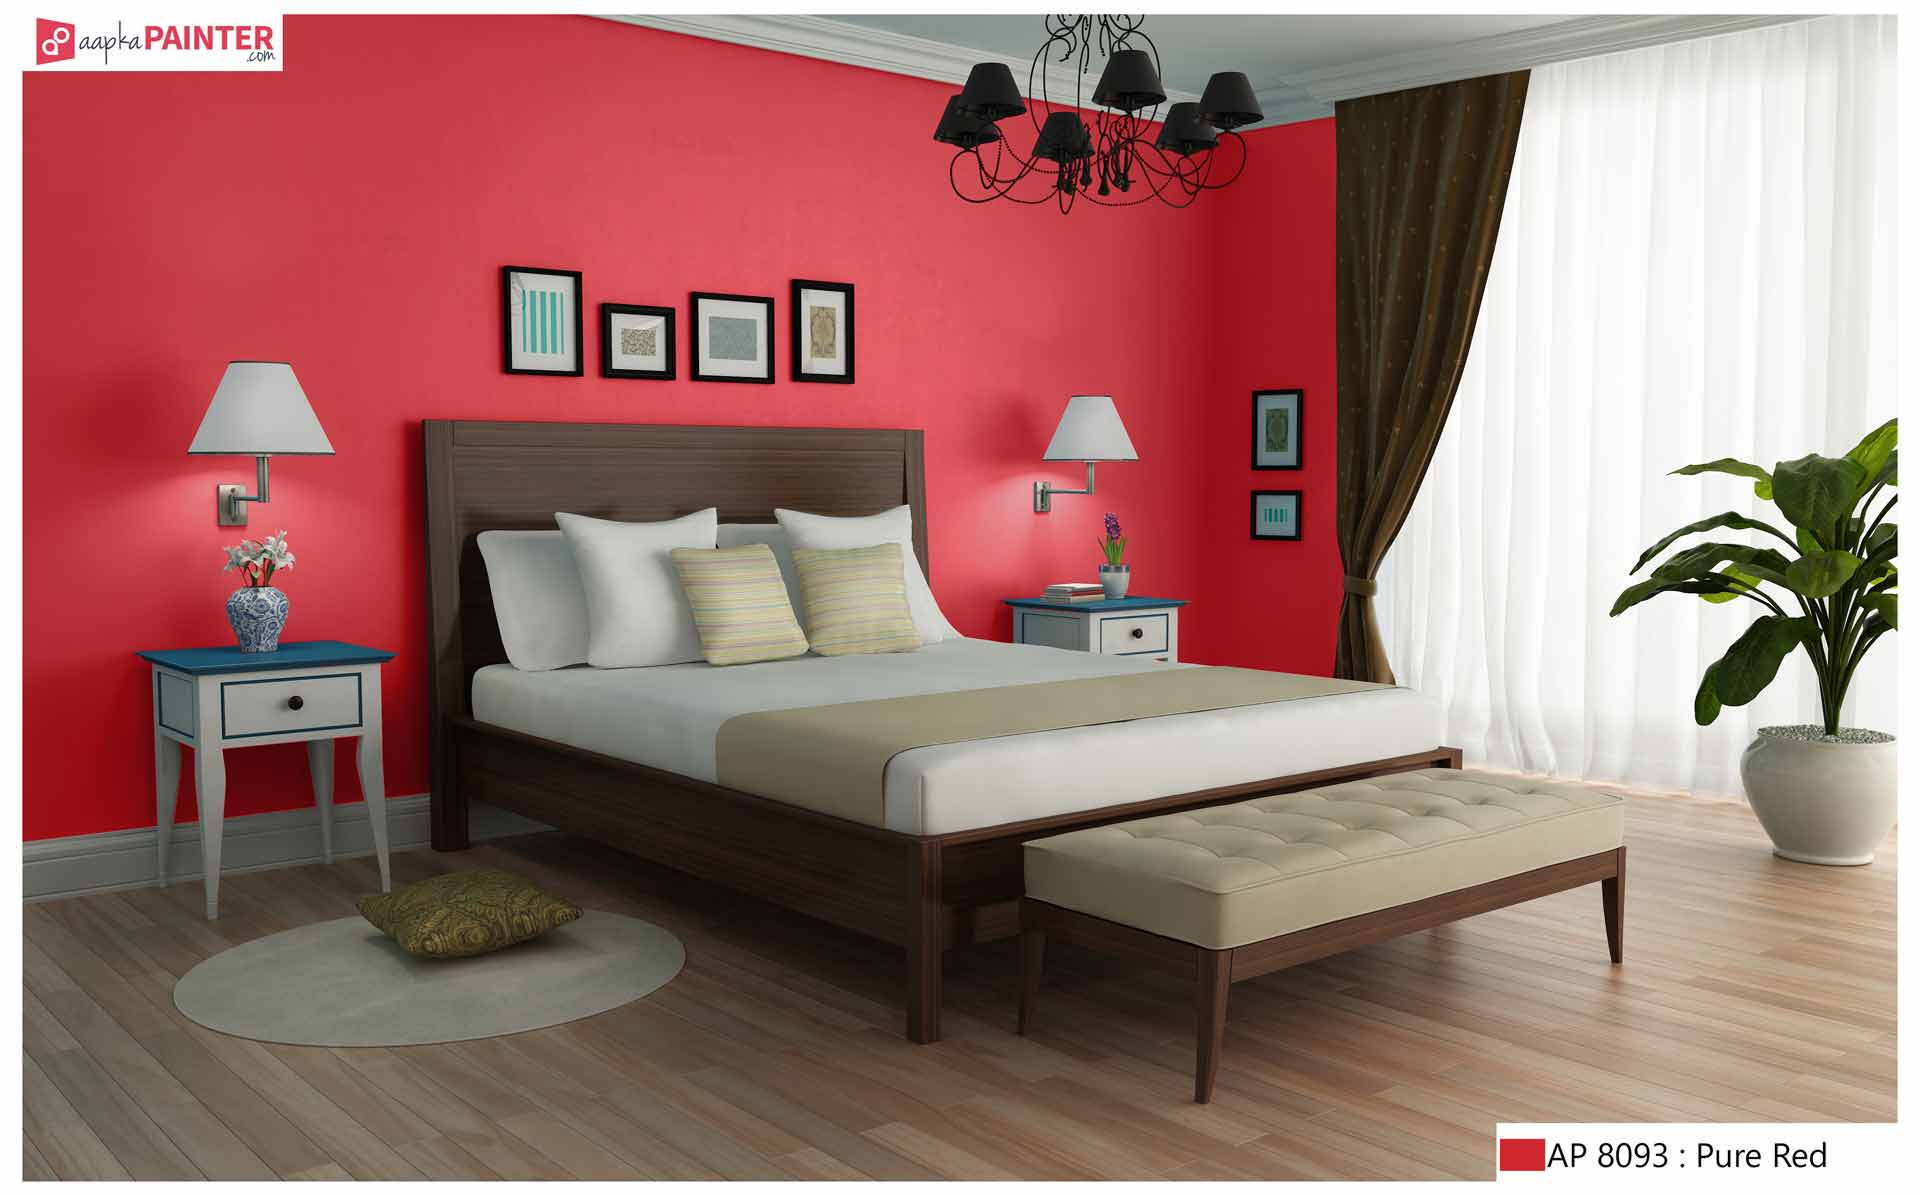 Some Beautiful Relaxing Bedroom Wall Painting Ideas For Home Decor